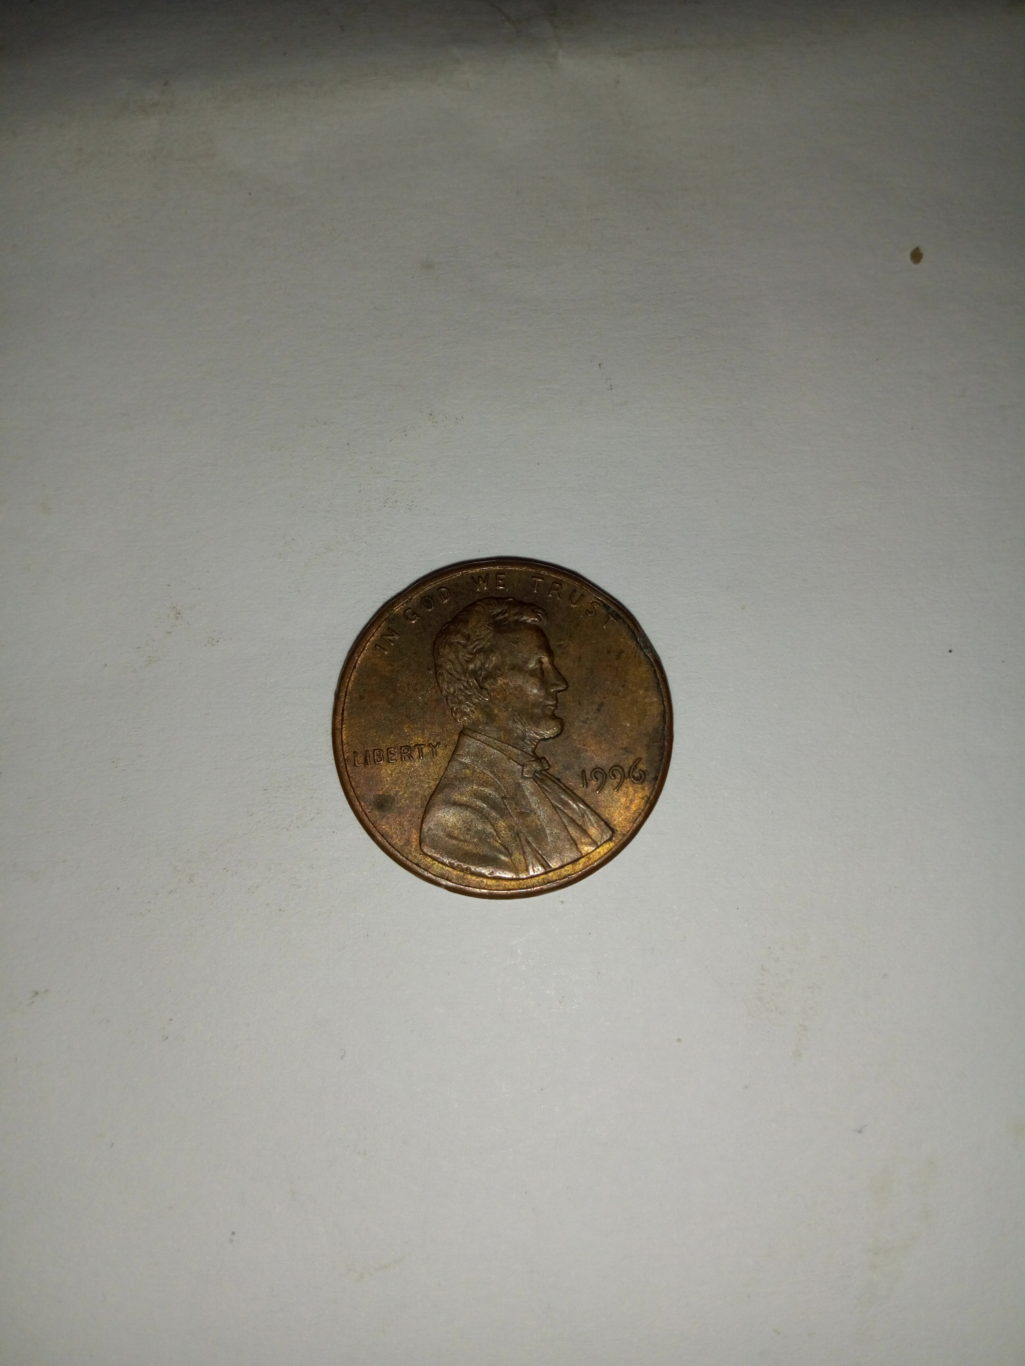 1996_ united states of America 1 cent